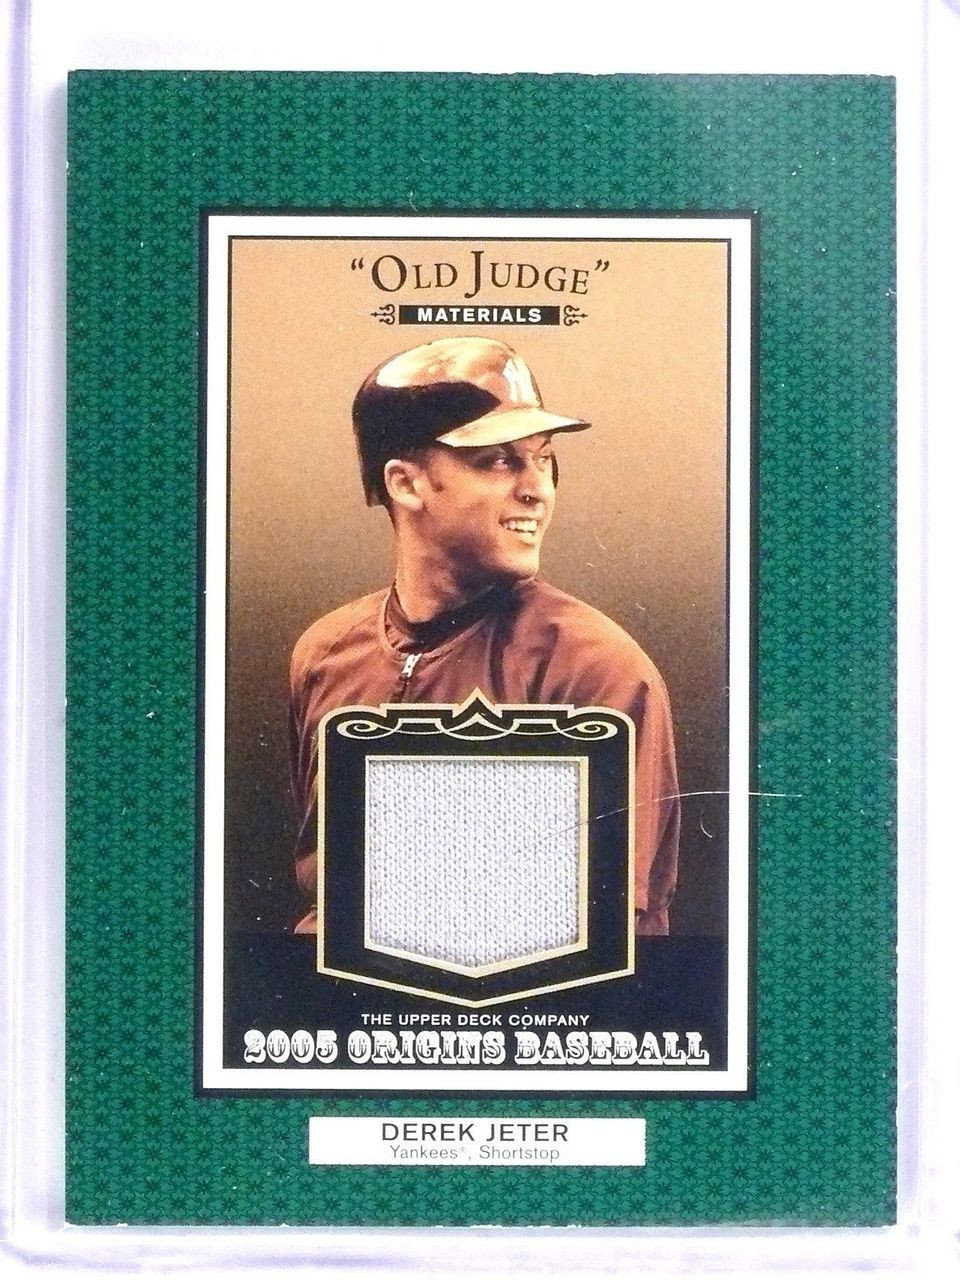 2005 Upper Deck Origins Old Judge Derek Jeter Jersey Ojdj 58026